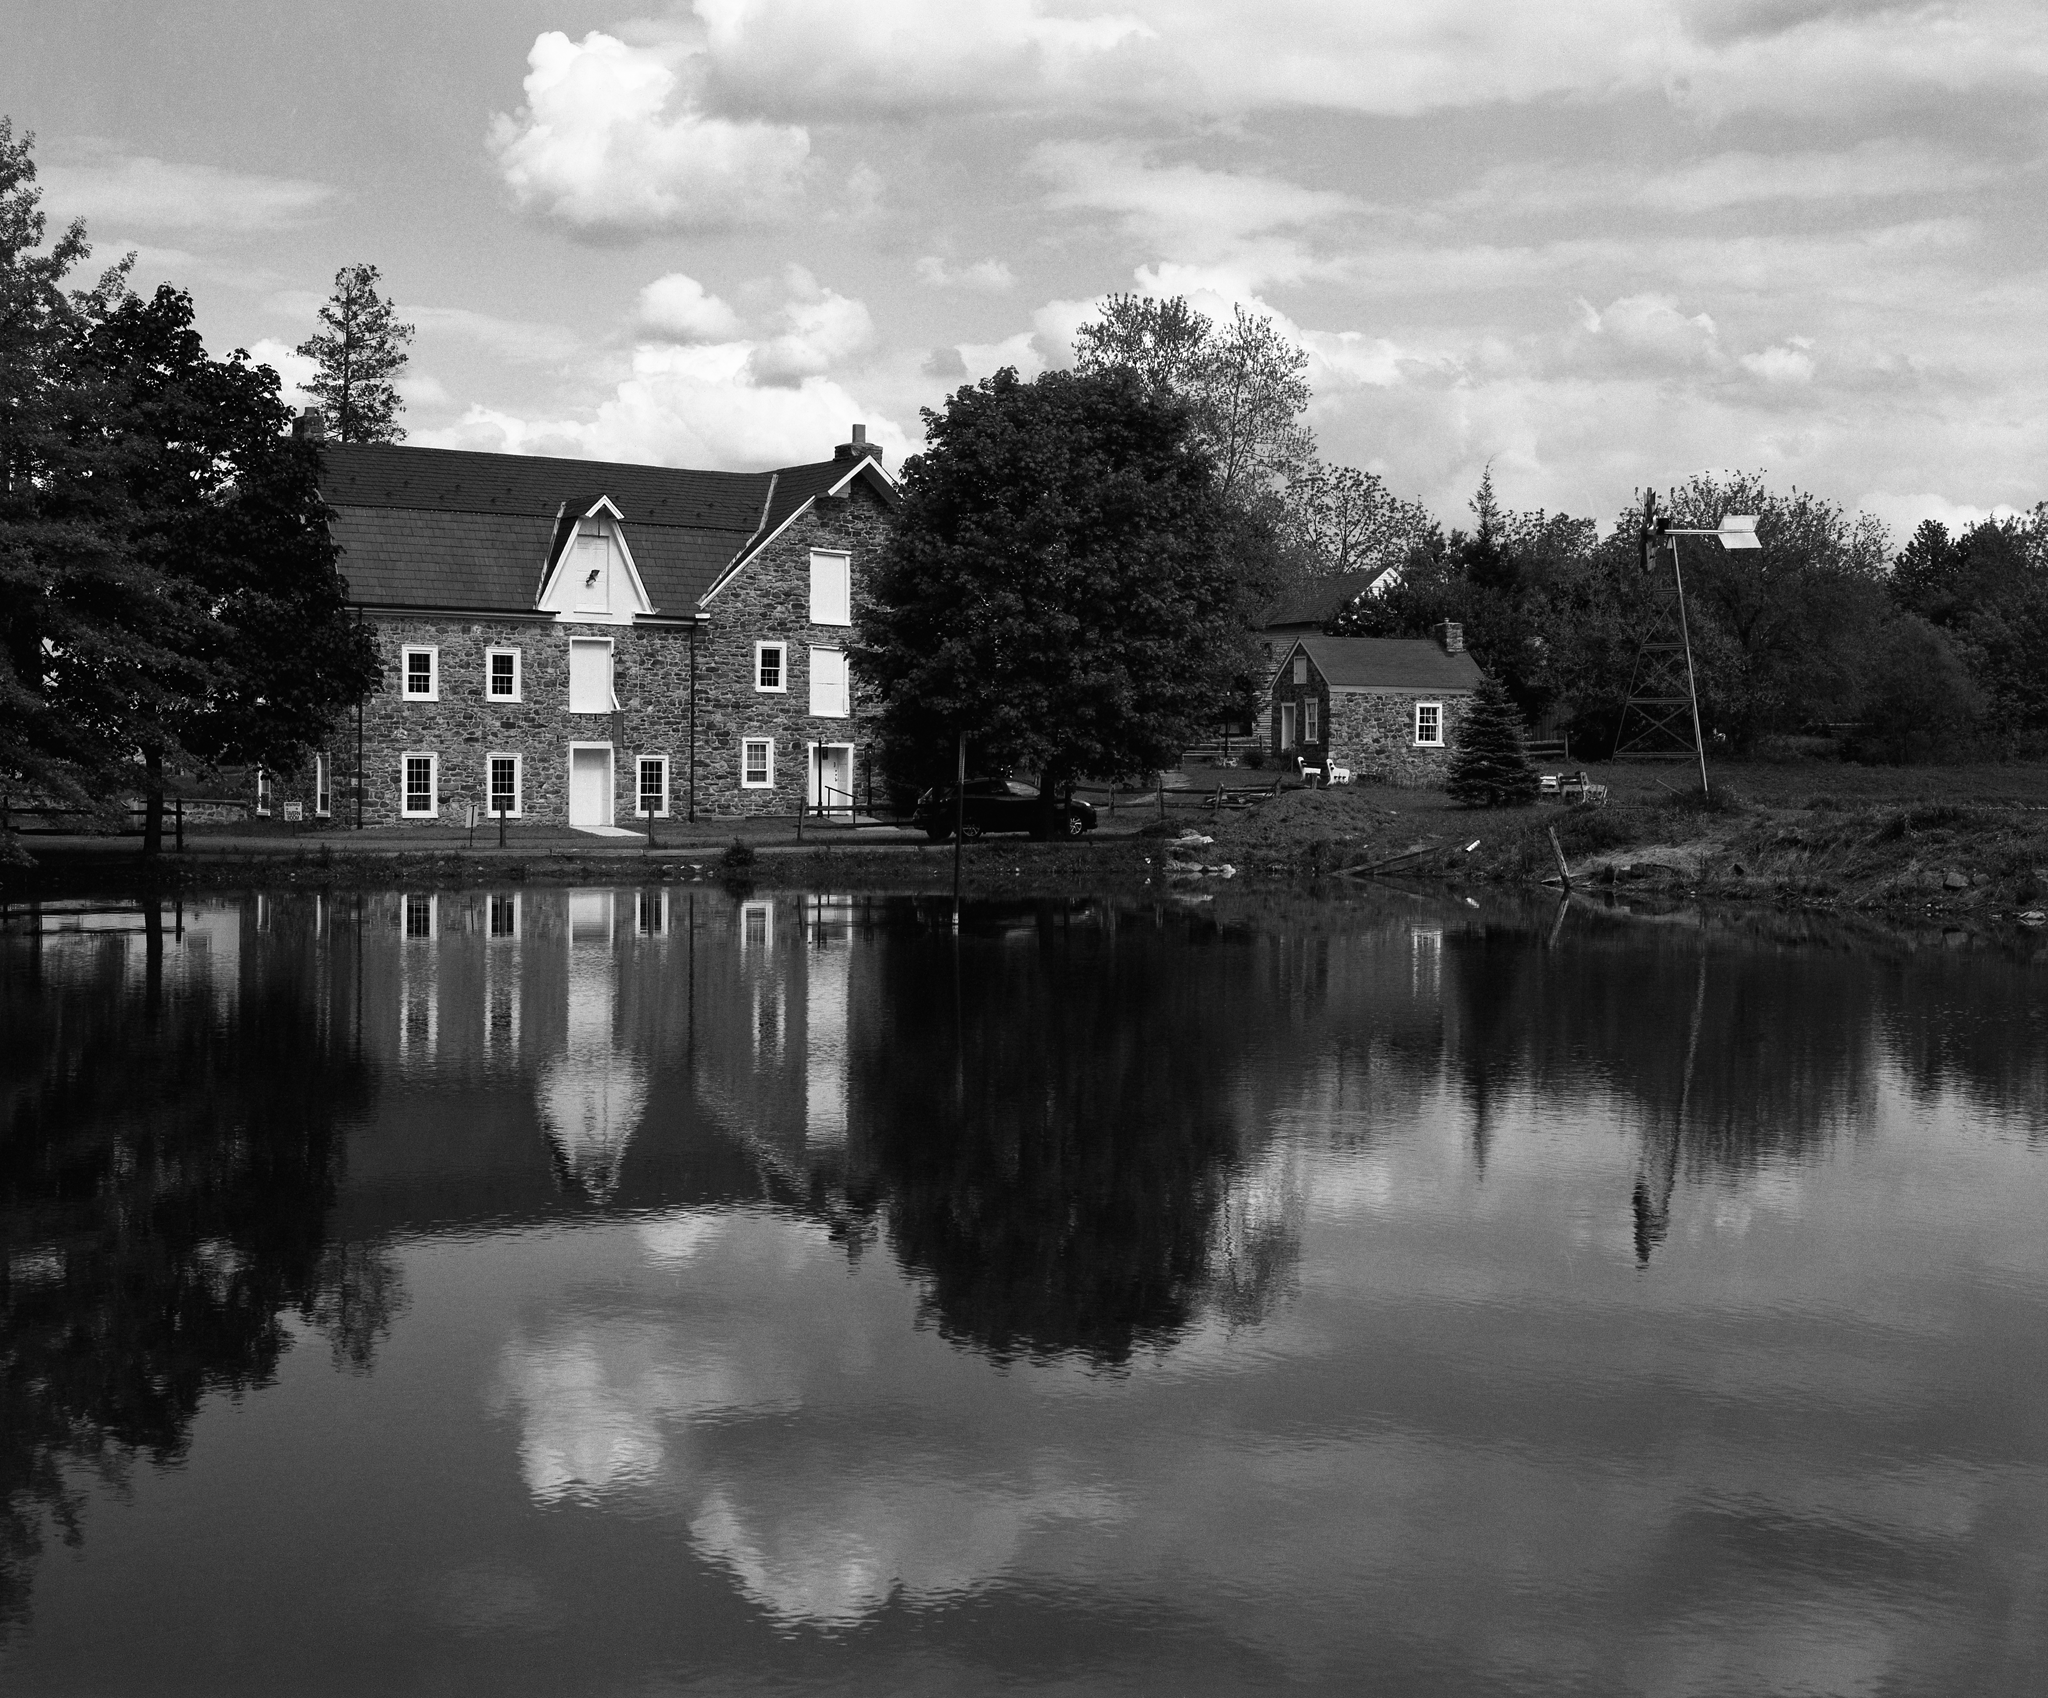 4x5_for_365_project_0144_Wagner_Mill.png